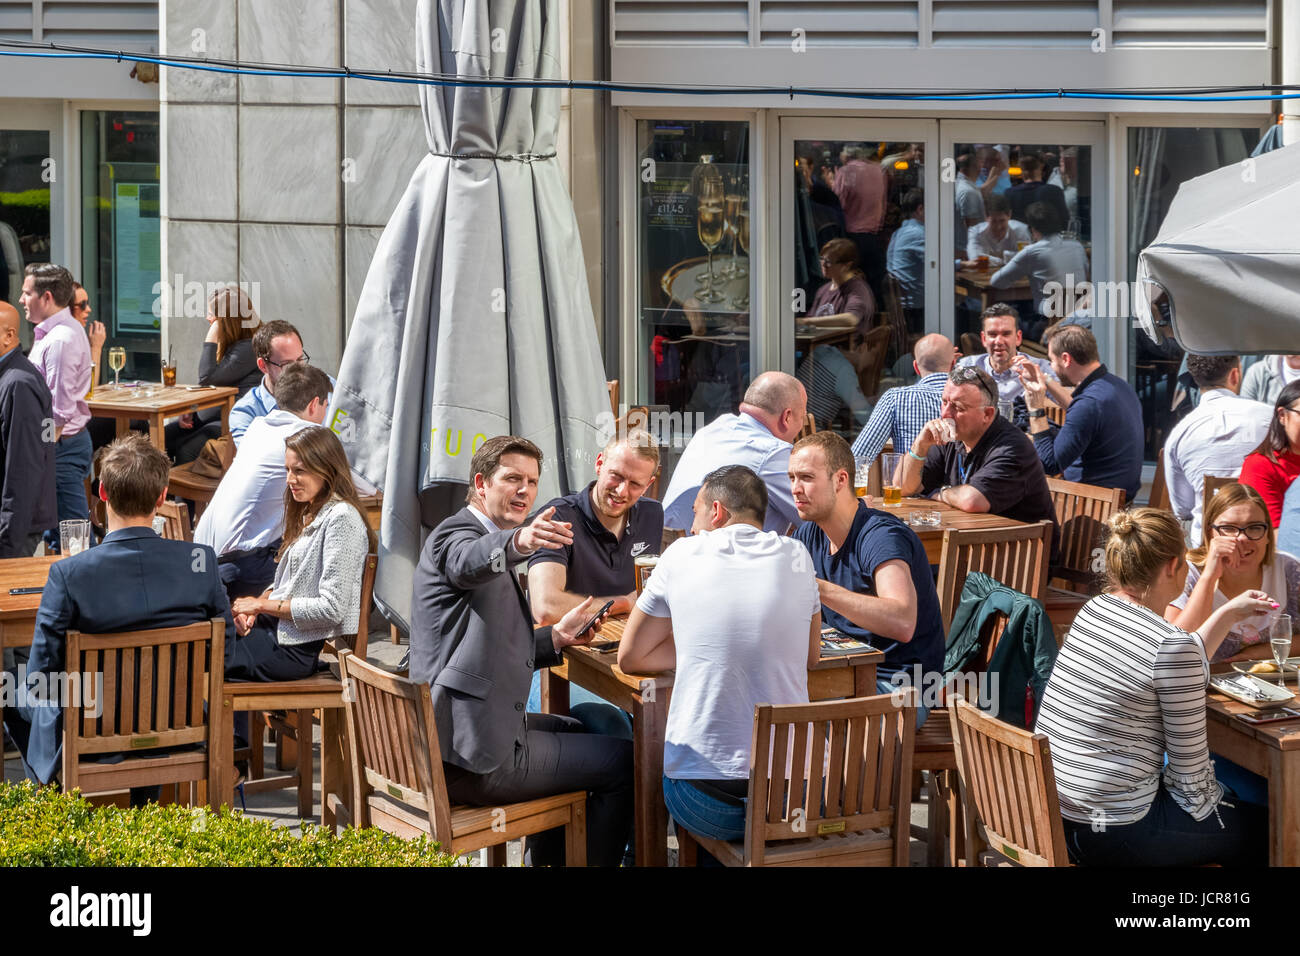 London, UK - May 10, 2017 - An outdoor bar in Canary Wharf packed with people drinking and chatting business on - Stock Image